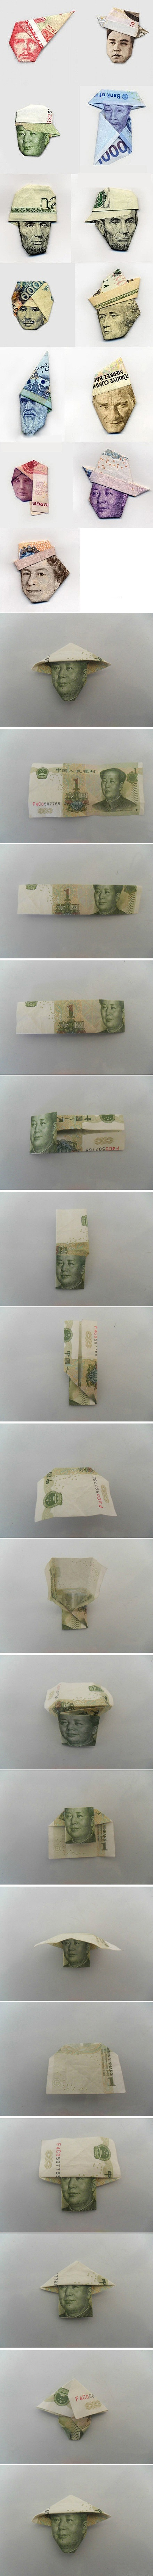 origami bank notes--- My ex boyfriend use to make these heads